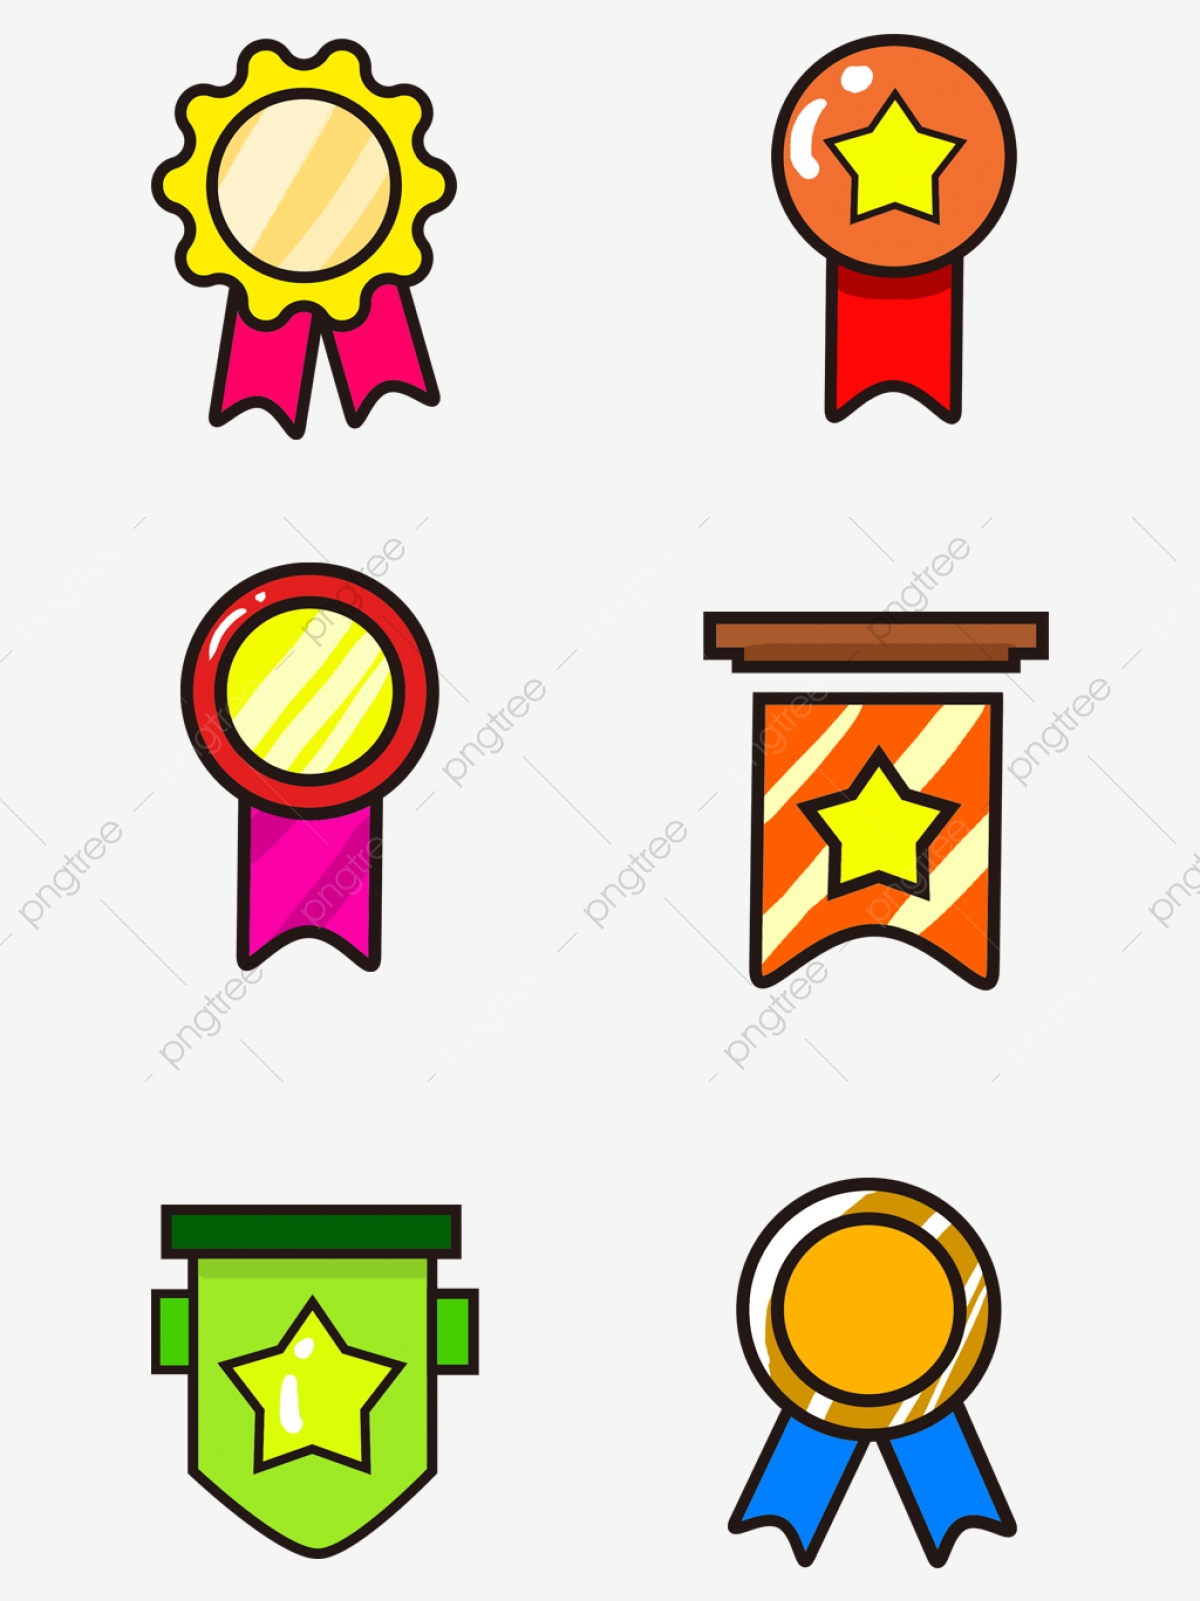 Badge clipart cute. Commercial hand drawn badges